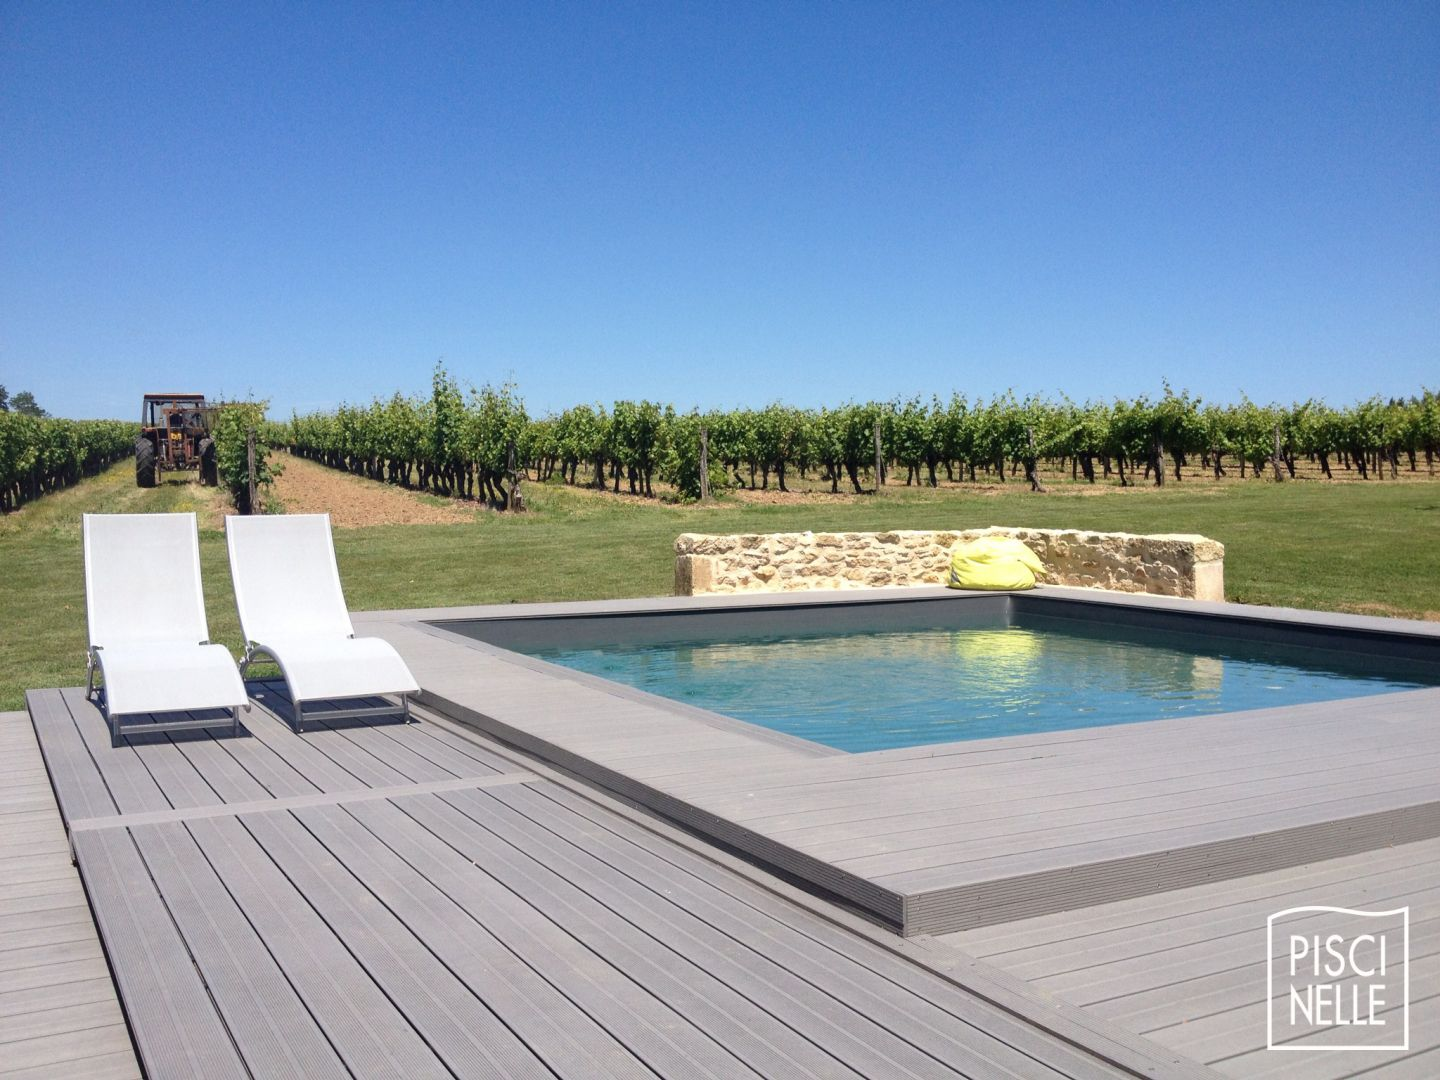 Design bassin carre jardin 37 nancy nancy departement for Piscine 37